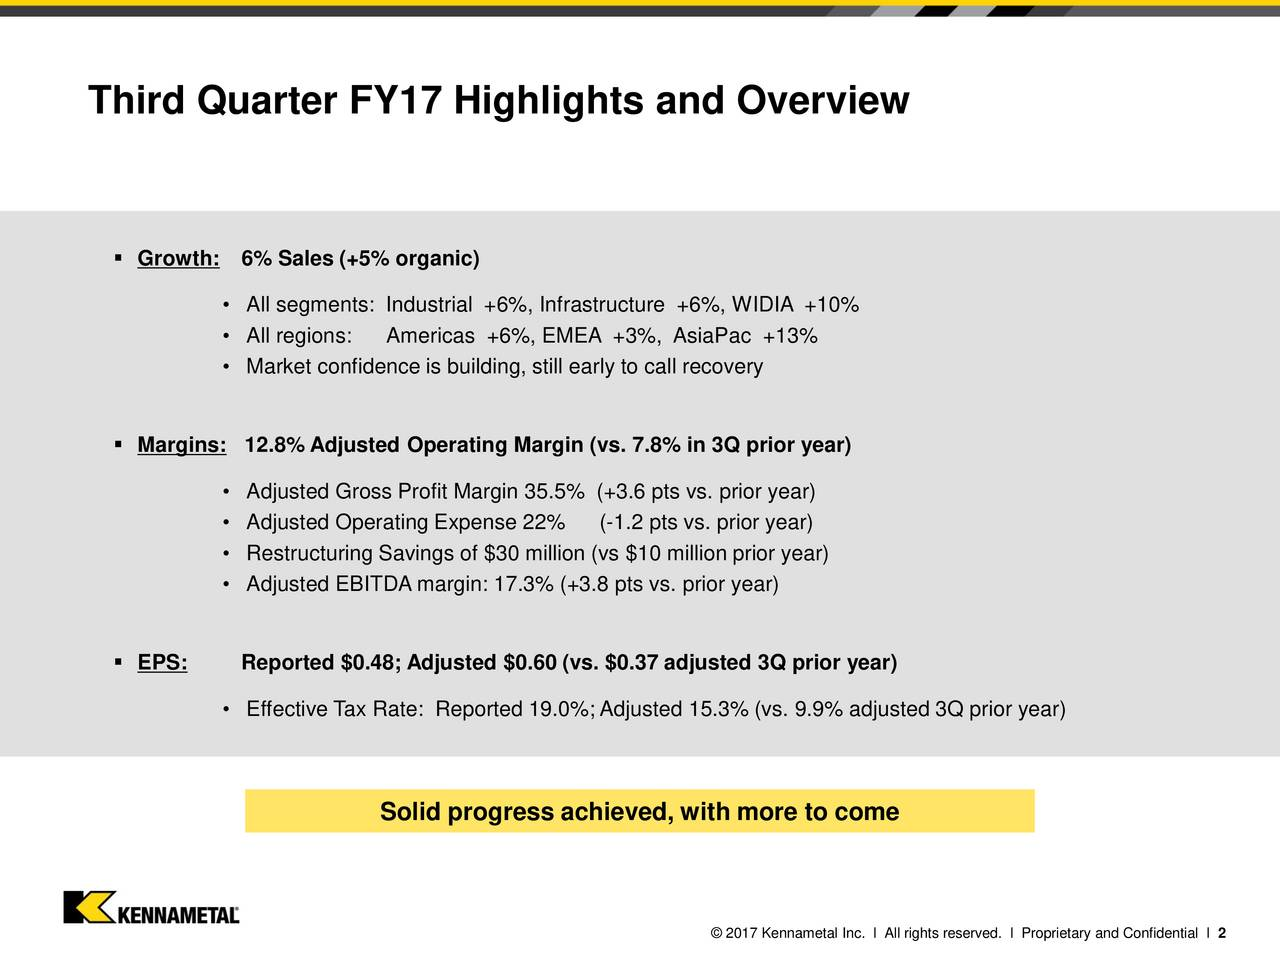 Growth: 6% Sales (+5% organic) All segments: Industrial +6%, Infrastructure +6%, WIDIA +10% All regions: Americas +6%, EMEA +3%, AsiaPac +13% Market confidence is building, still early to call recovery Margins: 12.8% Adjusted Operating Margin (vs. 7.8% in 3Q prior year) Adjusted Gross Profit Margin 35.5% (+3.6 pts vs. prior year) Adjusted Operating Expense 22% (-1.2 pts vs. prior year) Restructuring Savings of $30 million (vs $10 million prior year) Adjusted EBITDA margin: 17.3% (+3.8 pts vs. prior year) EPS: Reported $0.48; Adjusted $0.60 (vs. $0.37 adjusted 3Q prior year) Effective Tax Rate: Reported 19.0%; Adjusted 15.3% (vs. 9.9% adjusted 3Q prior year) Solid progress achieved, with more to come 2017 Kennametal Inc. l All rights reserved. l Proprietary and Confidential l 2